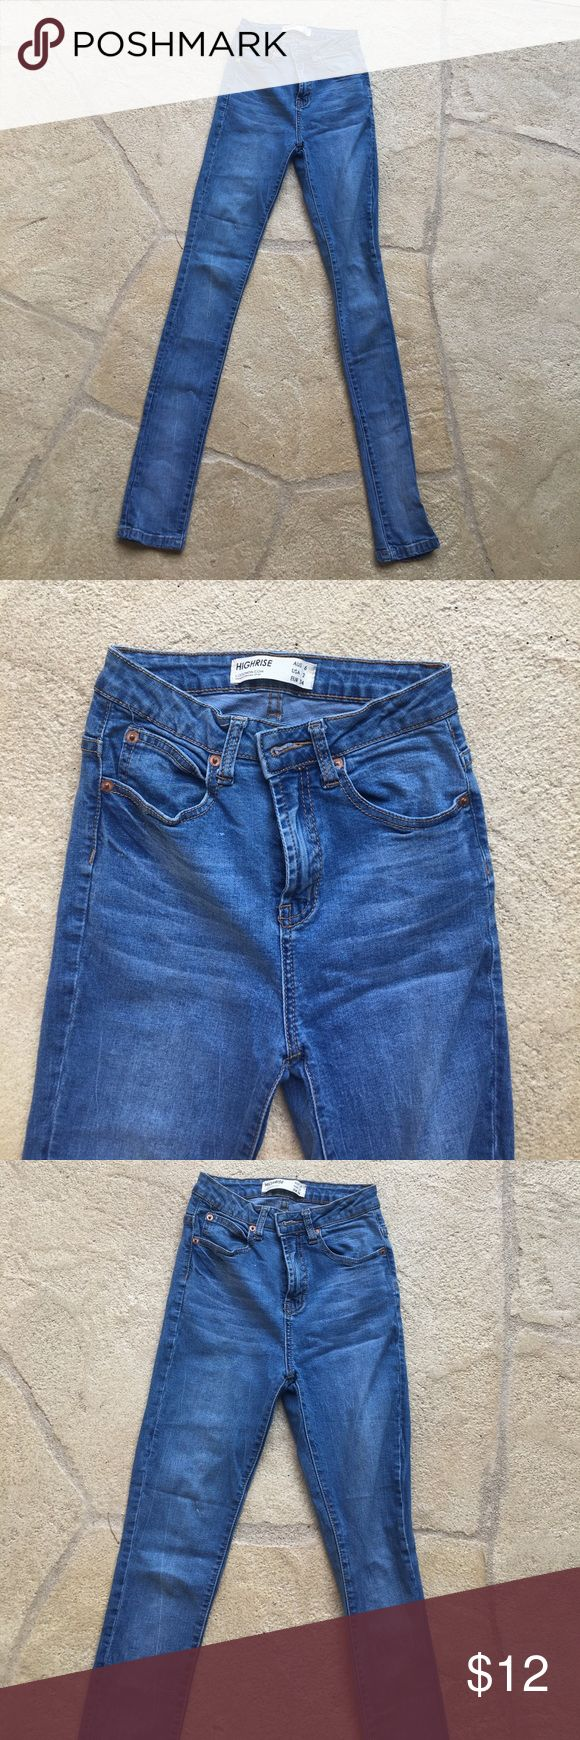 High rise jeans. Stretchy material! Cute high rise denim jeans. They stretch a bit. They are HIGH rise Cotton On Jeans Skinny